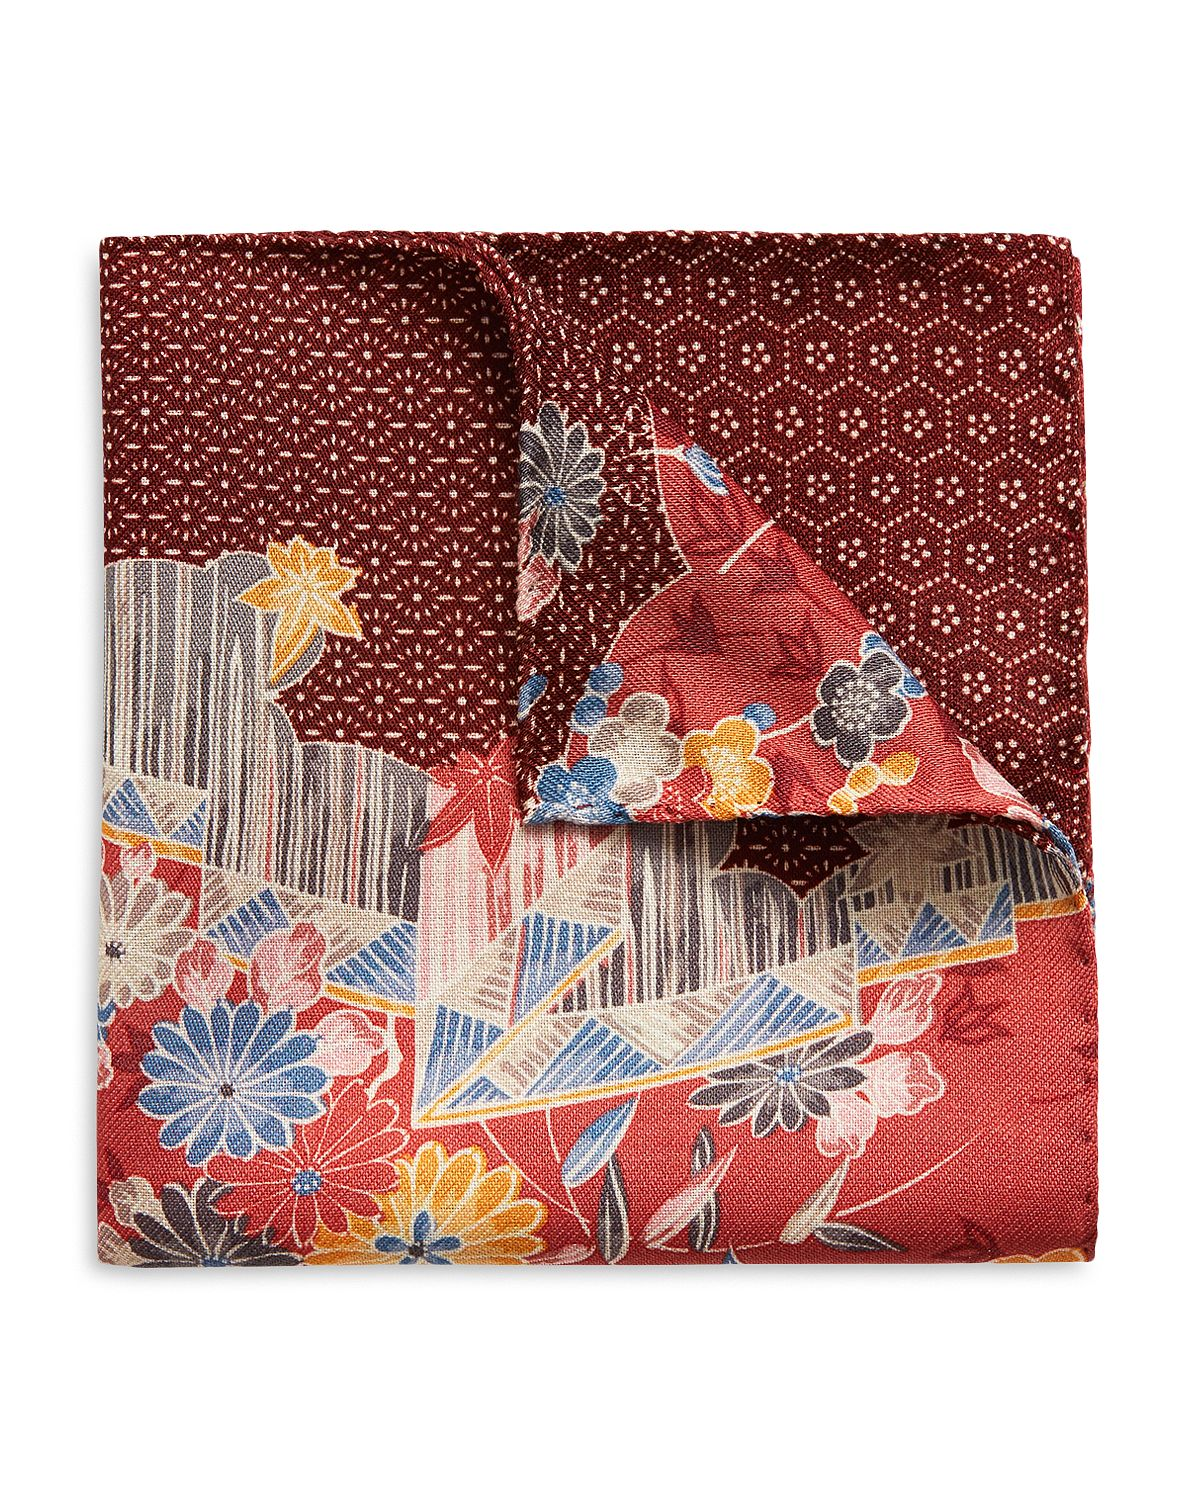 Eton Floral & Medallion Pocket Square